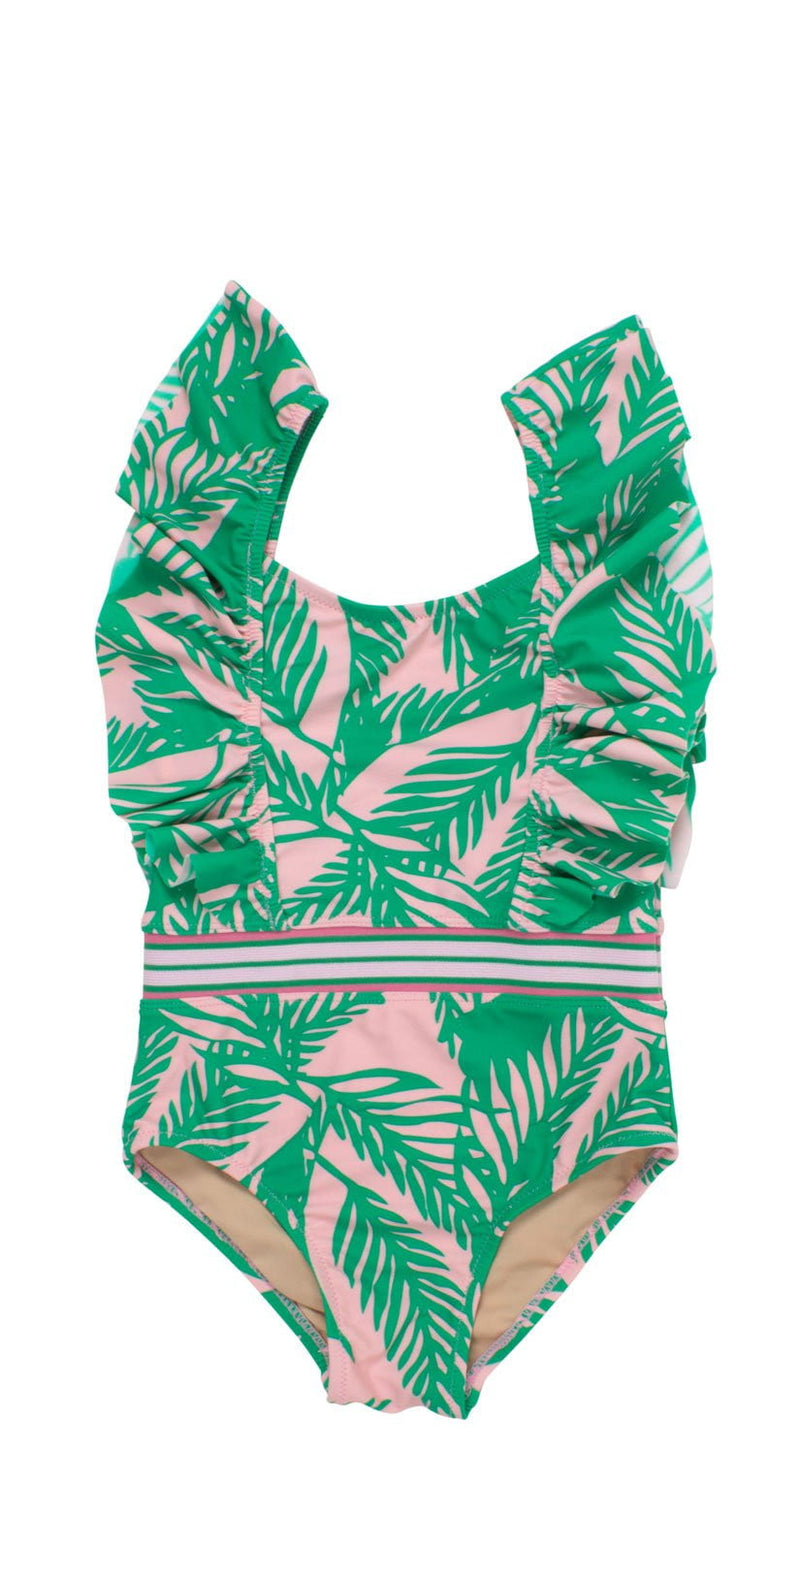 Shade Critters Girls Palm Reader One Piece Swimsuit SG01H-056-M18: